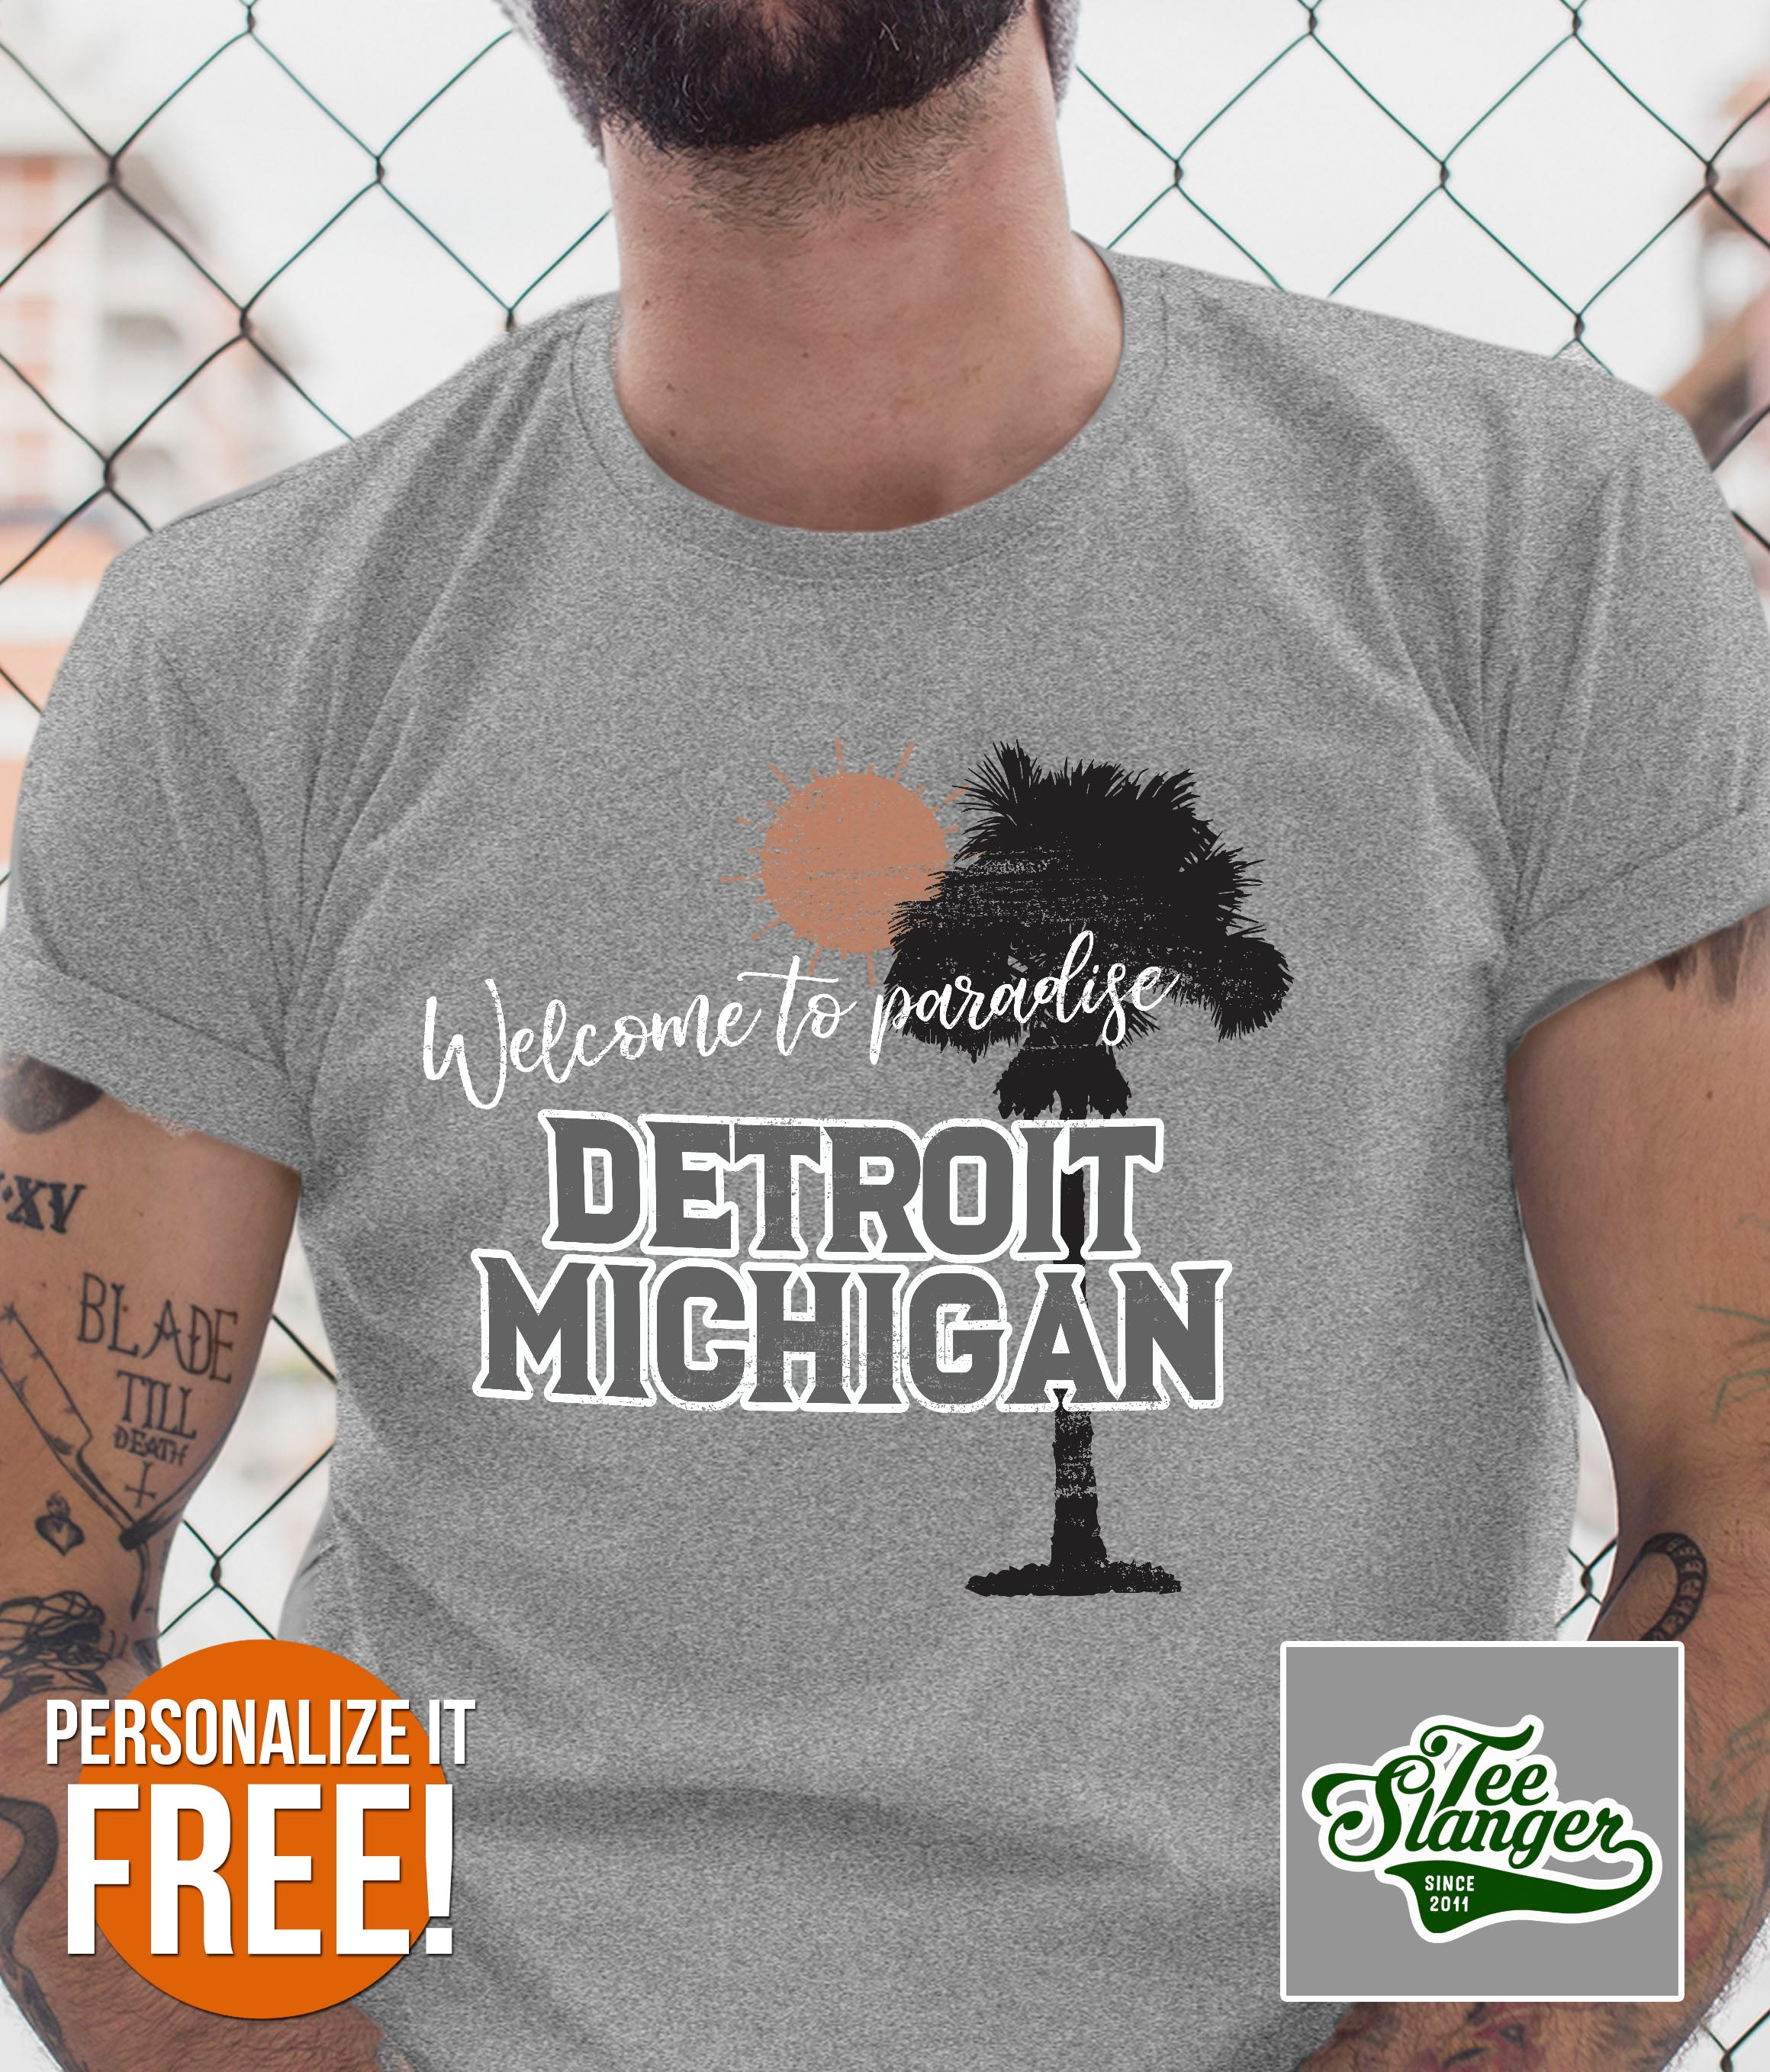 PERSONALIZED WELCOME TO PARADISE T-SHIRT ON MODEL